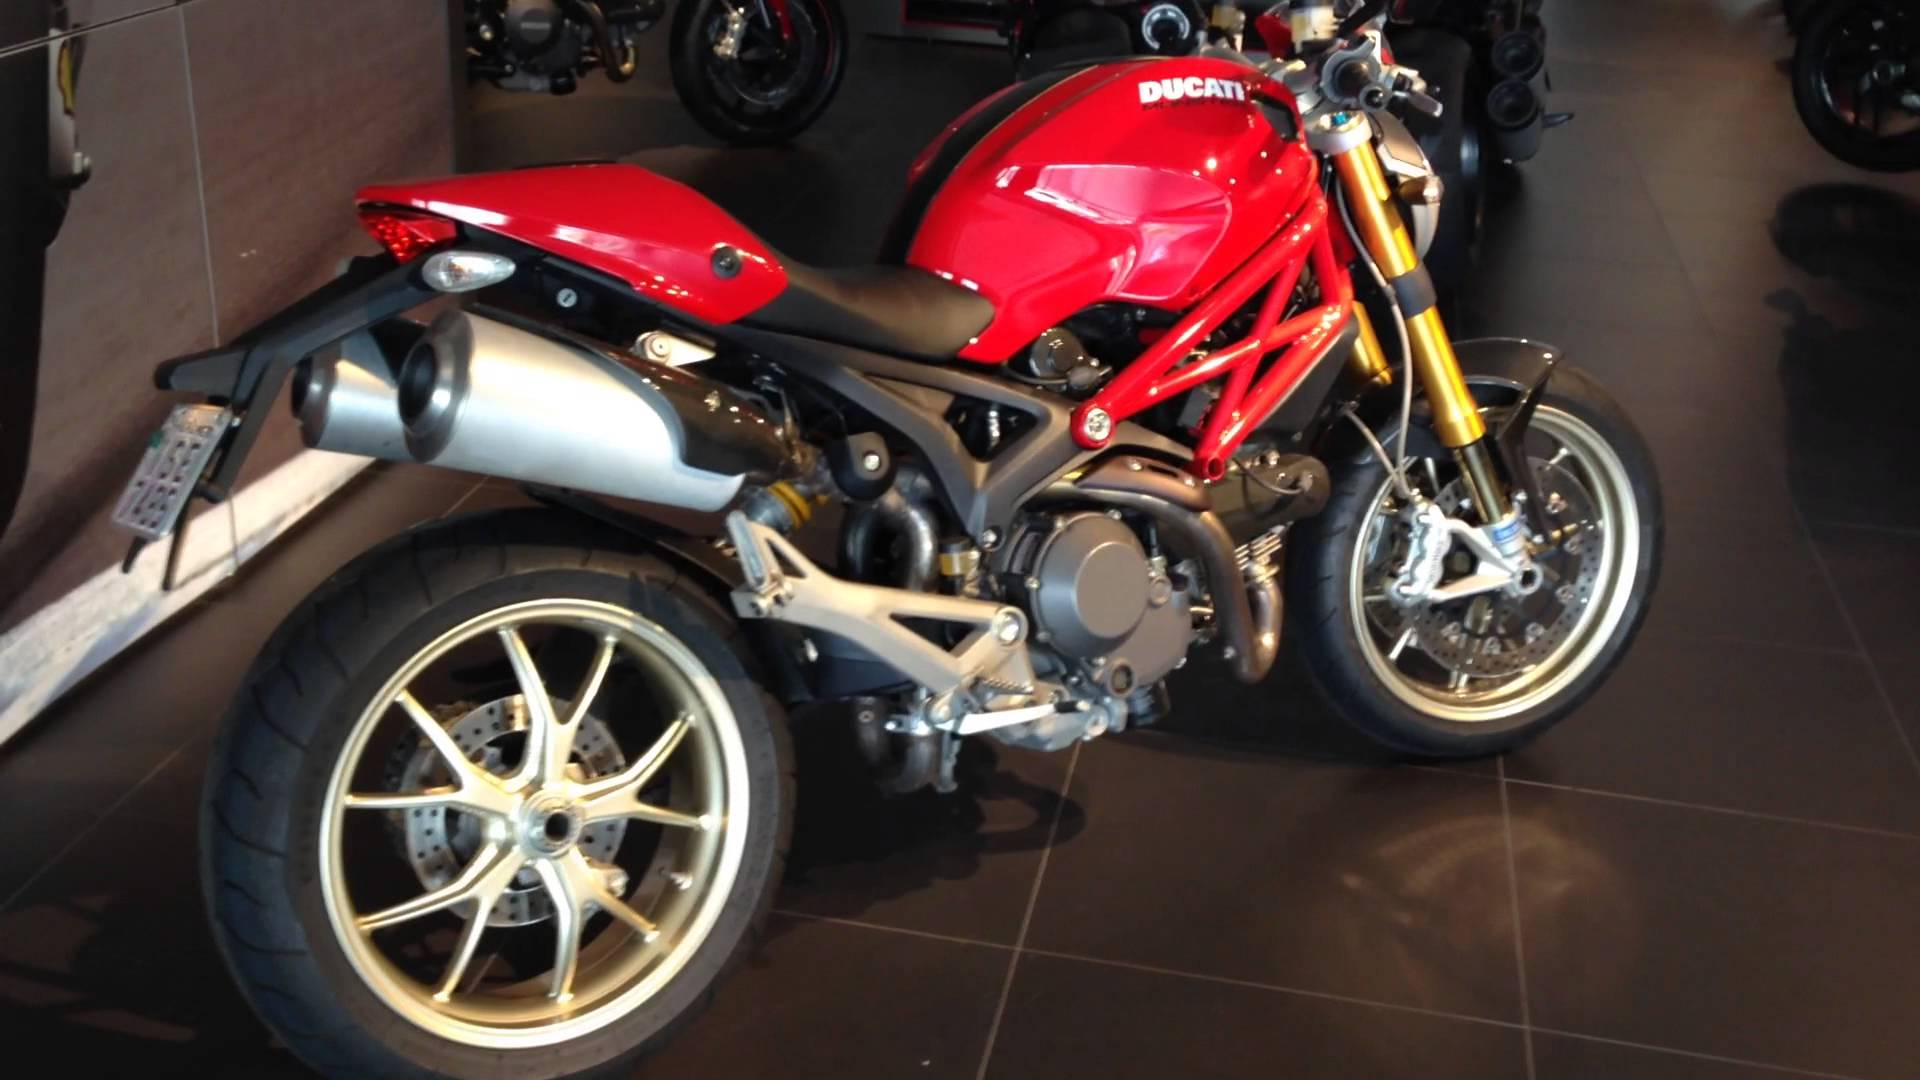 Ducati Monster 1100 S images #79356